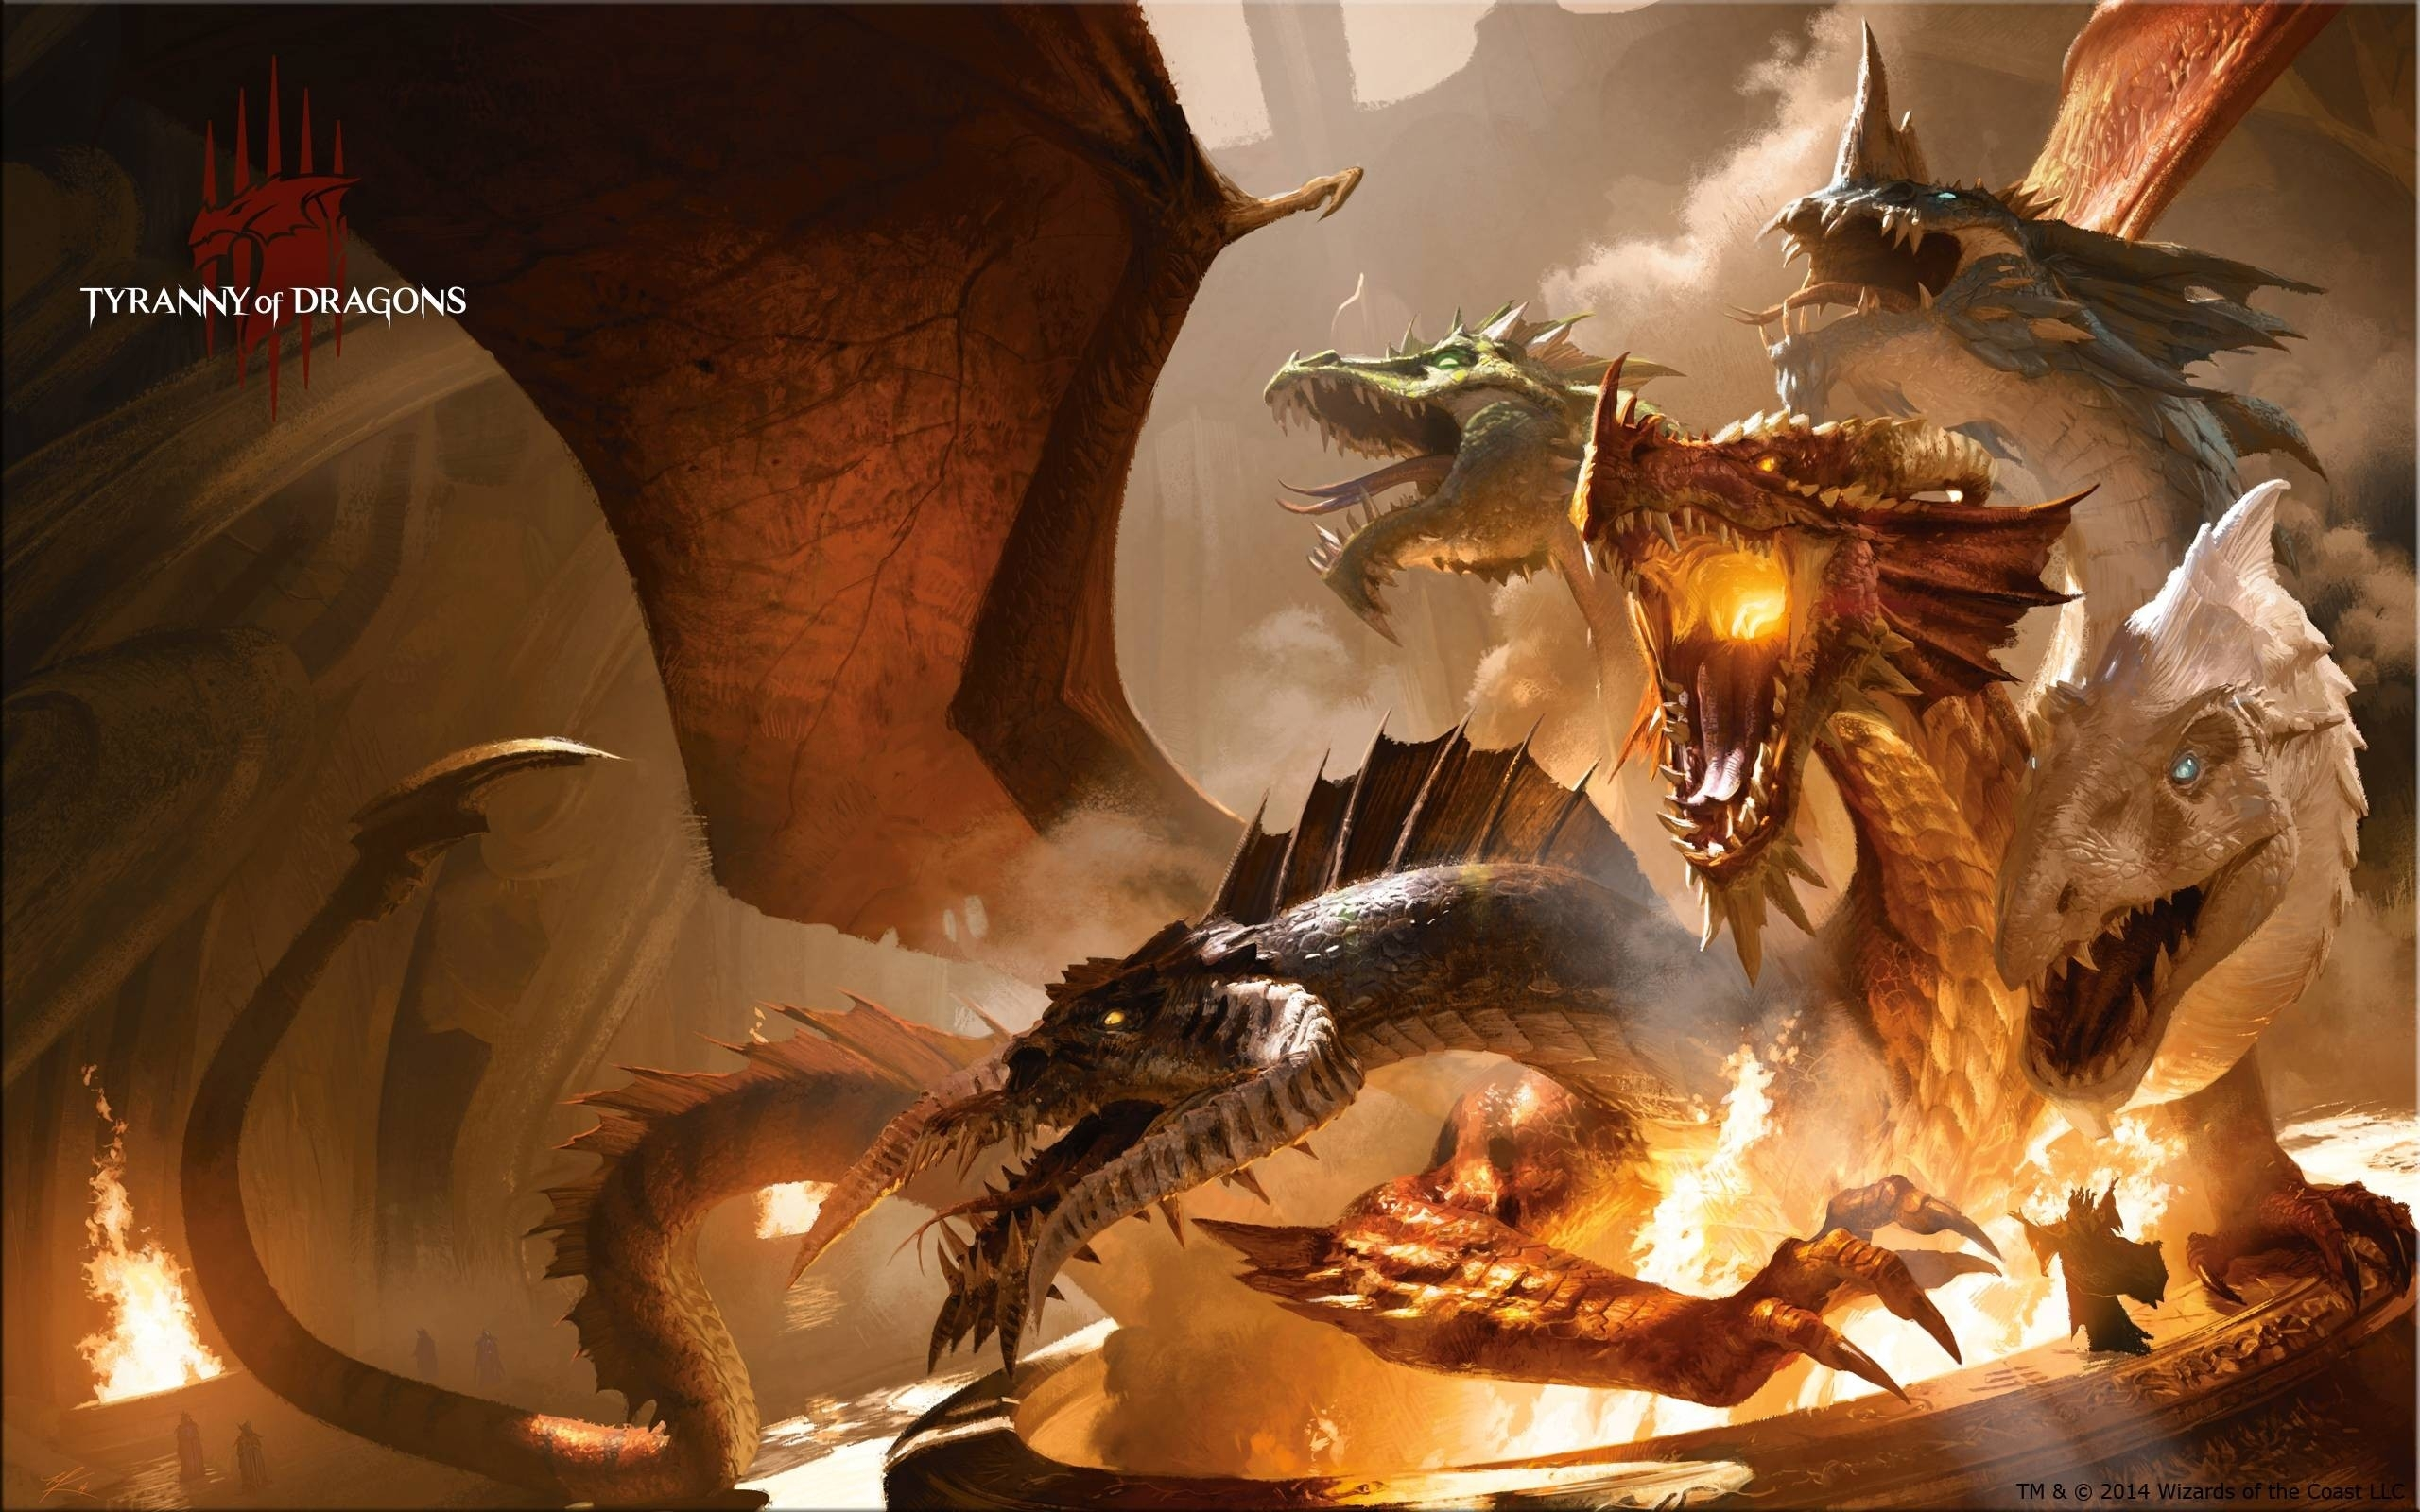 dungeons and dragons wallpaper ·① download free awesome wallpapers